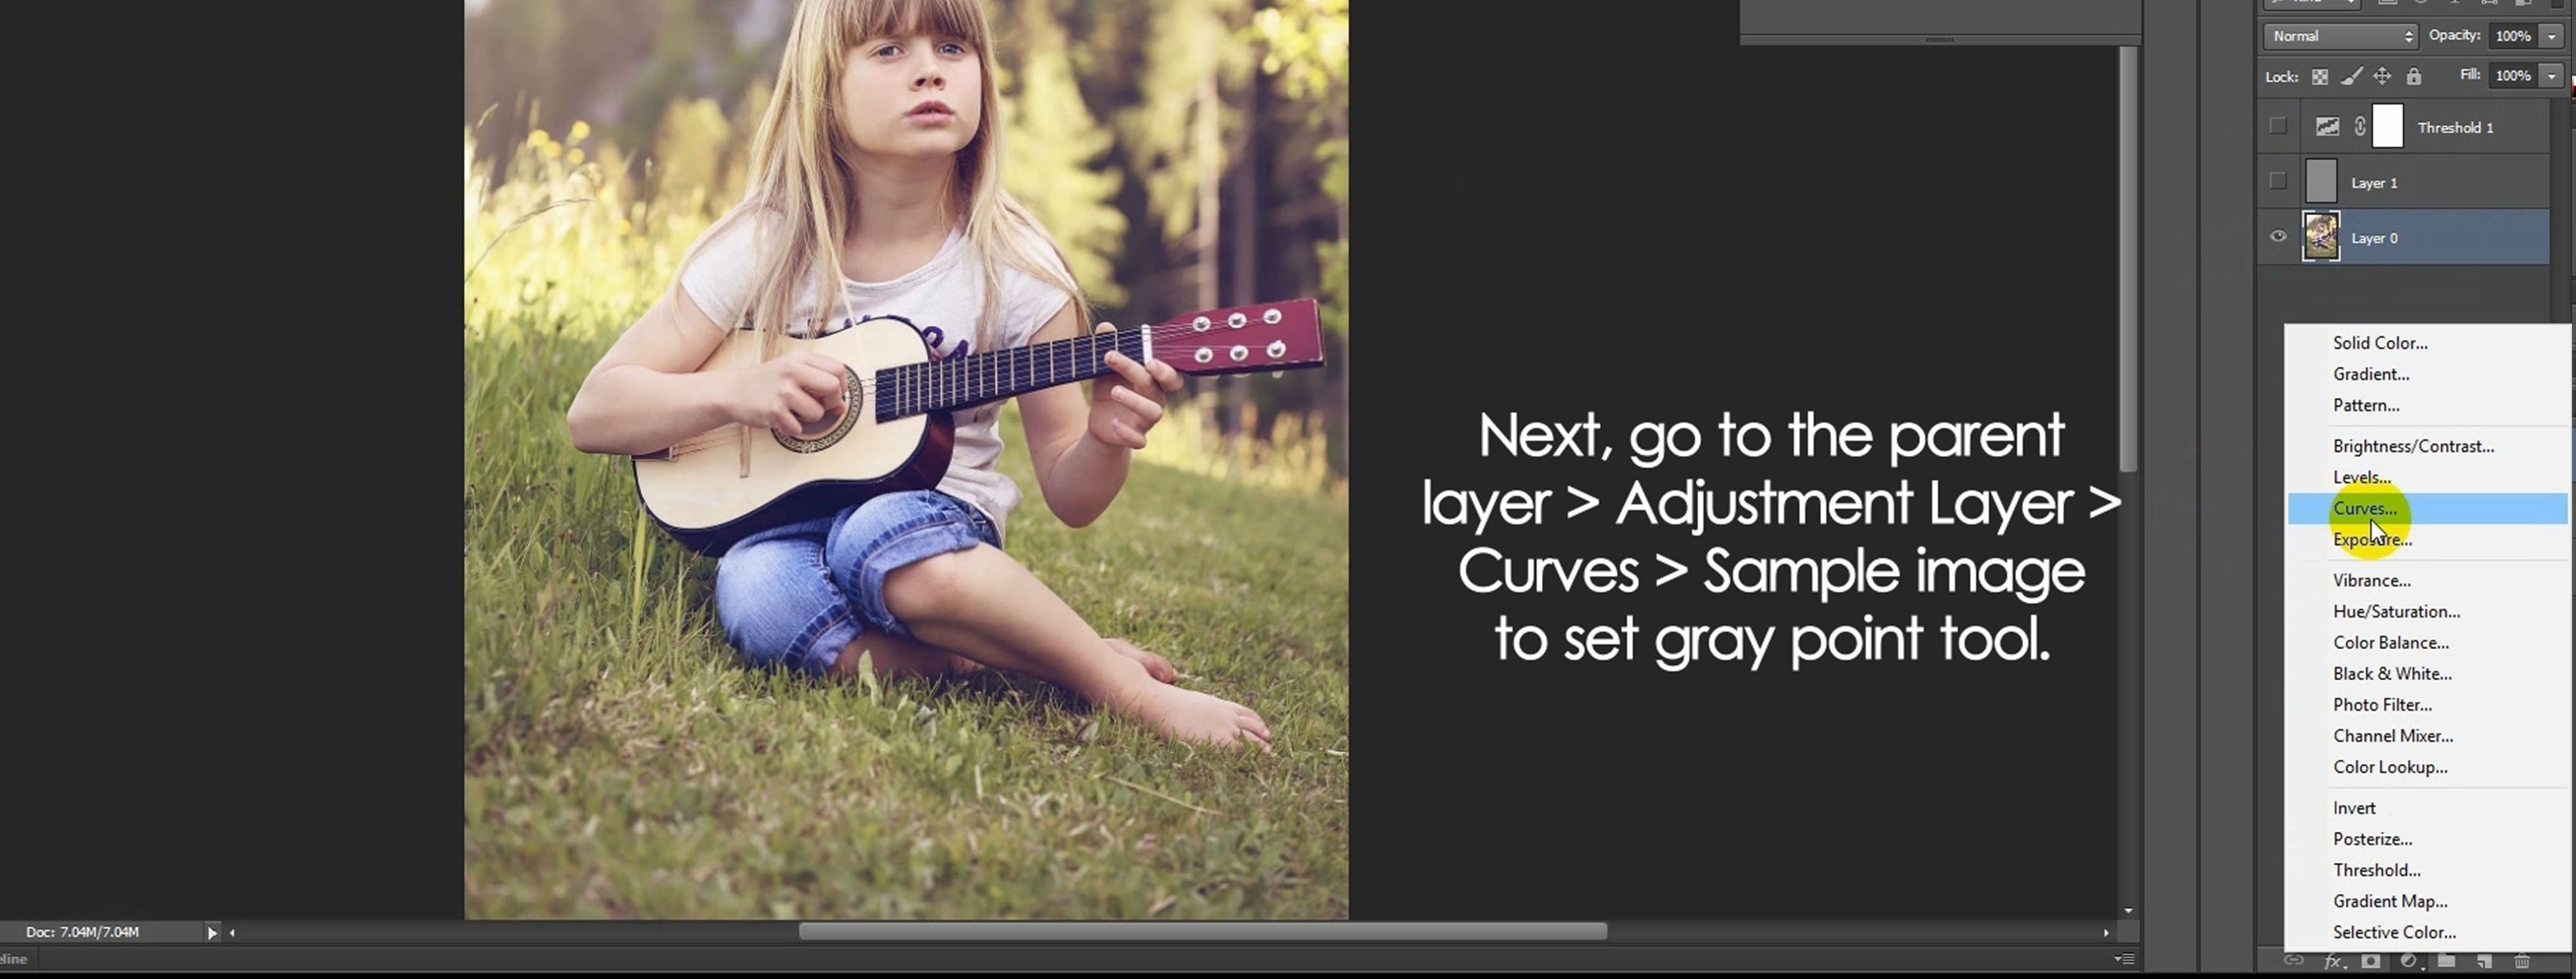 Tutorial basic color correction whitegray balance in photoshop after that go to the parent1st layer adjustment layer curves sample image to set the gray point tool baditri Choice Image